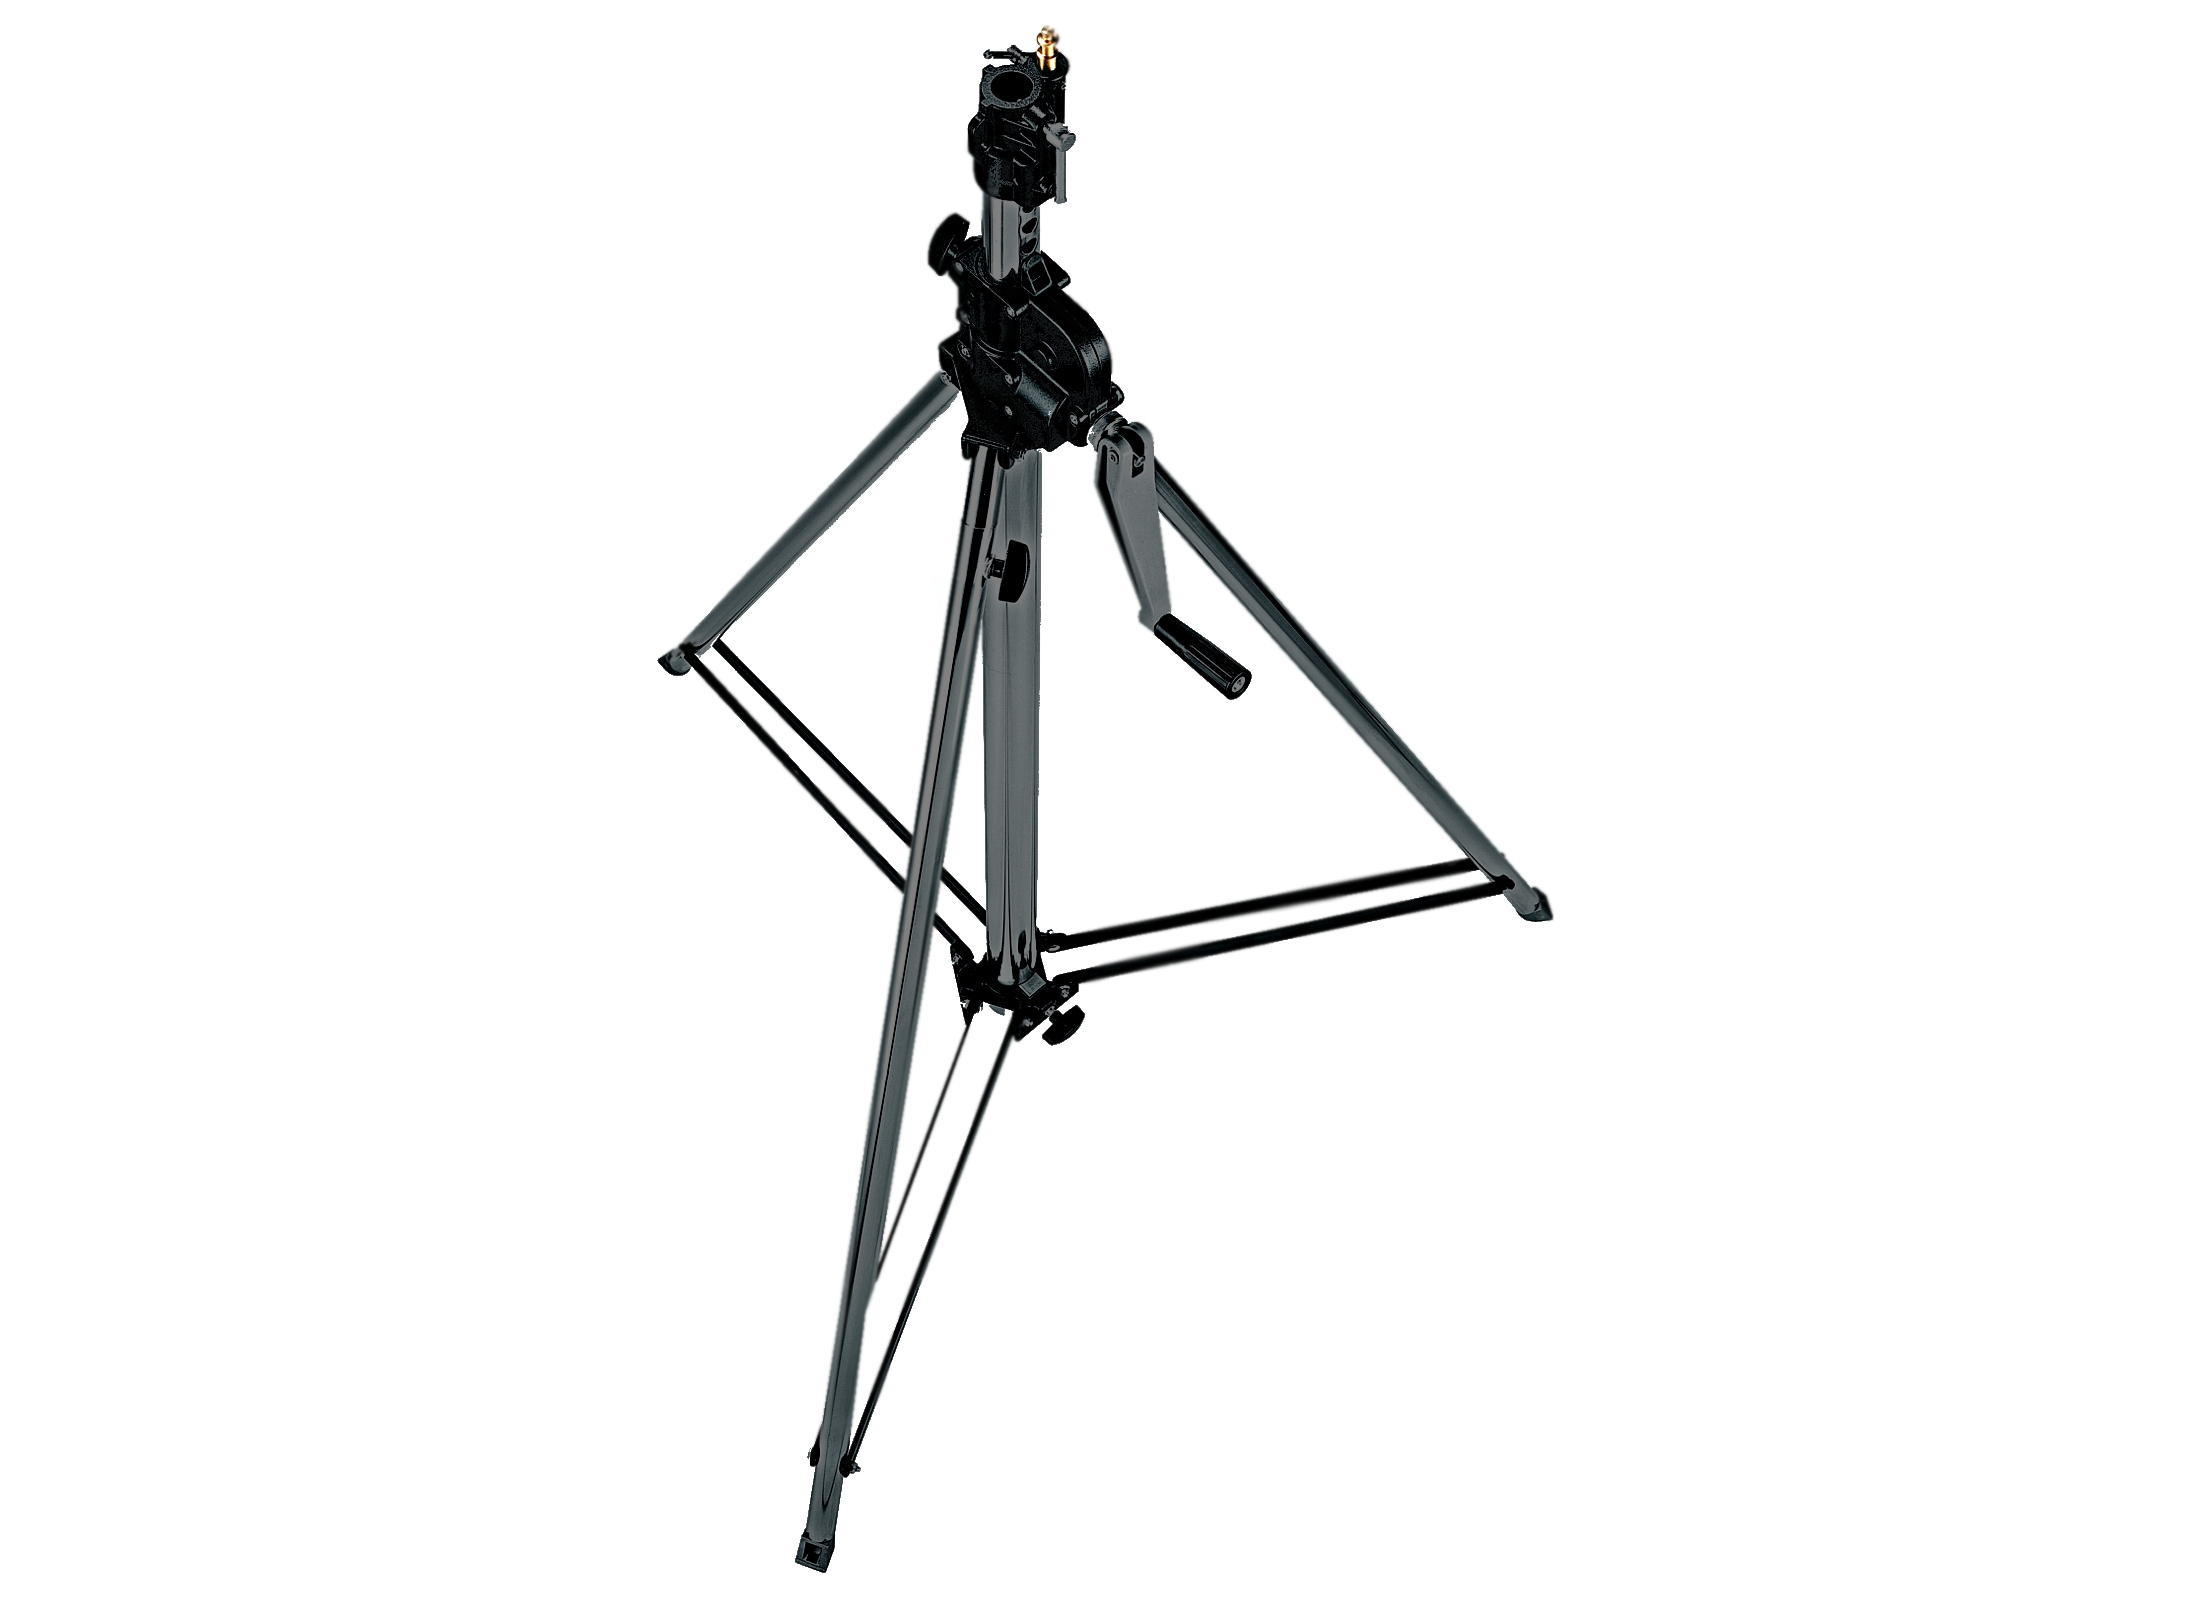 Manfrotto Wind-up stand 2 seksjoner - Manfrotto Wind-up stand, 2 seksjoner m/ hjul.Pris: 400,- eks. mva